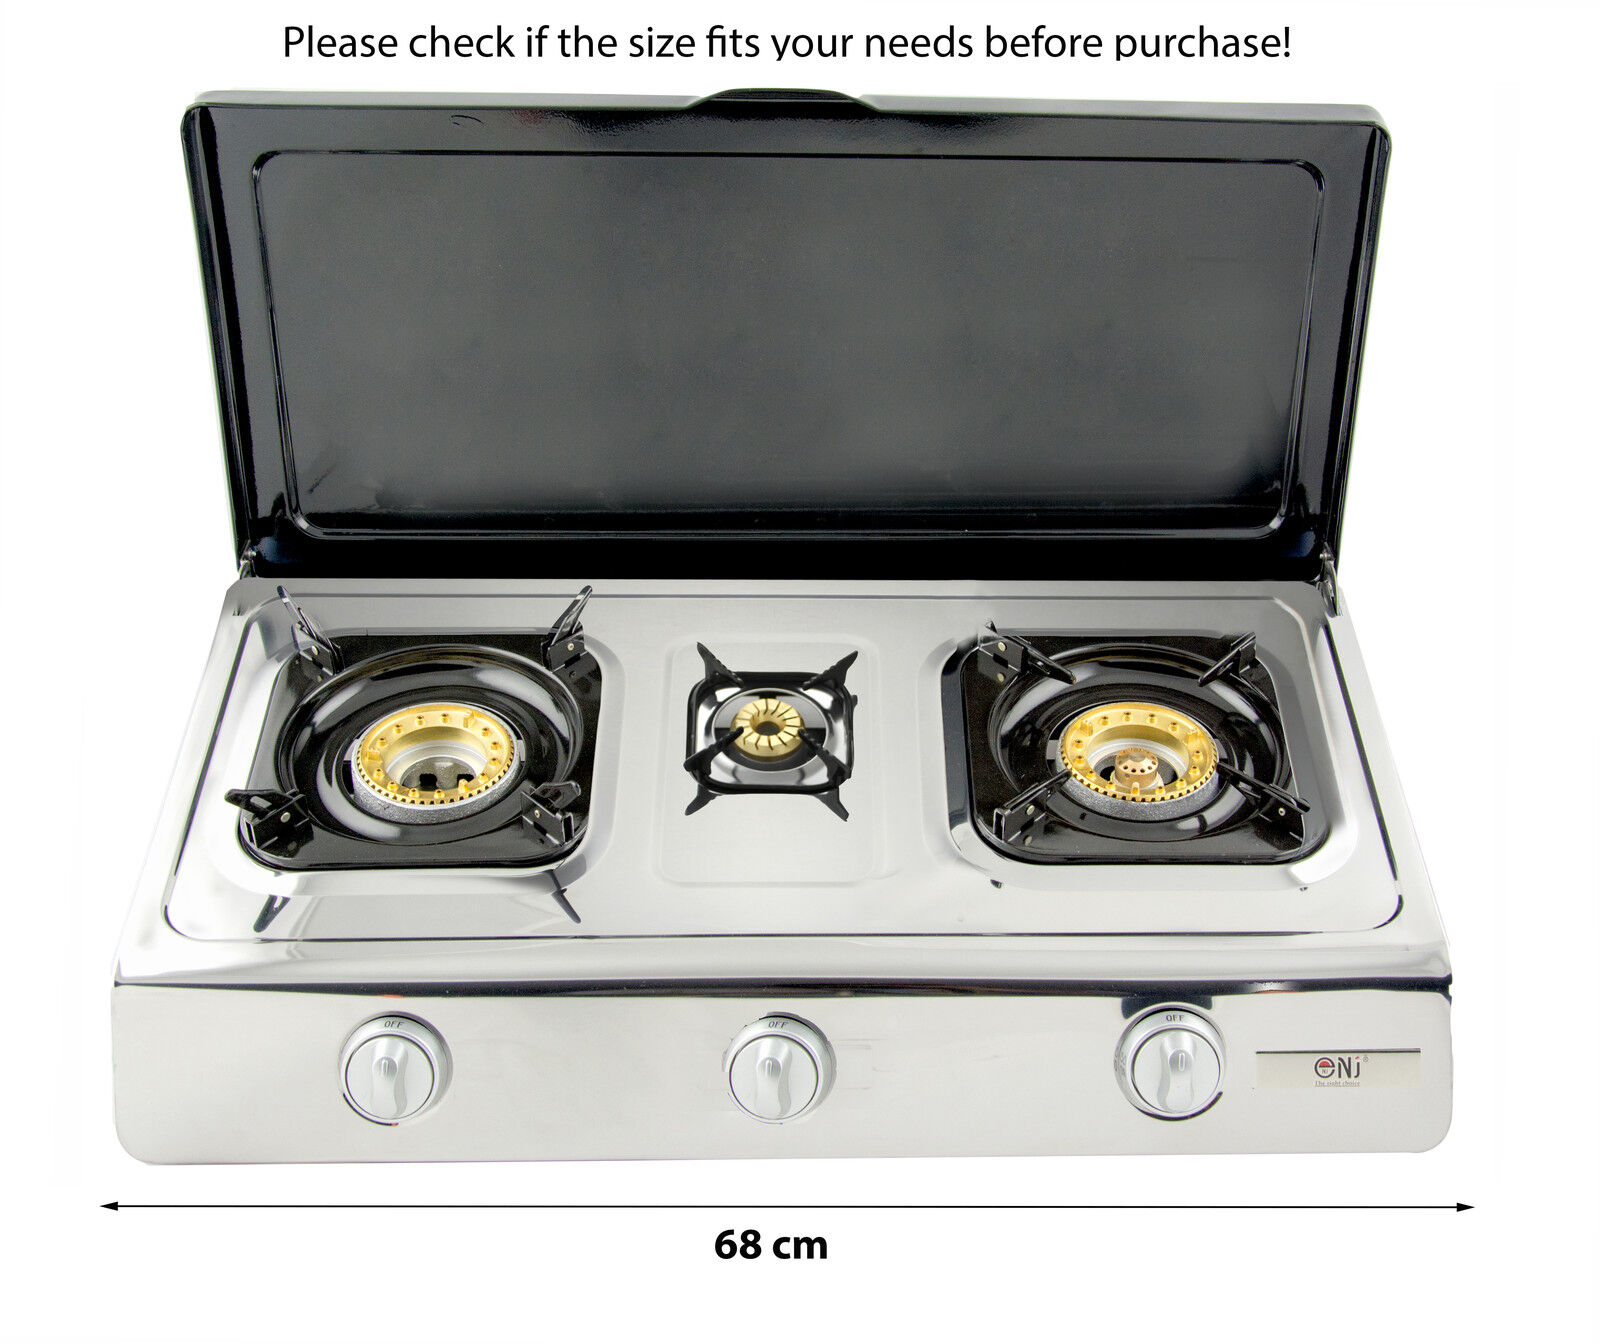 NJ NGB-300C Gas Stove 3 Burner 70cm Lid Portable Camping Outdoor LPG 8kW WOK NEW